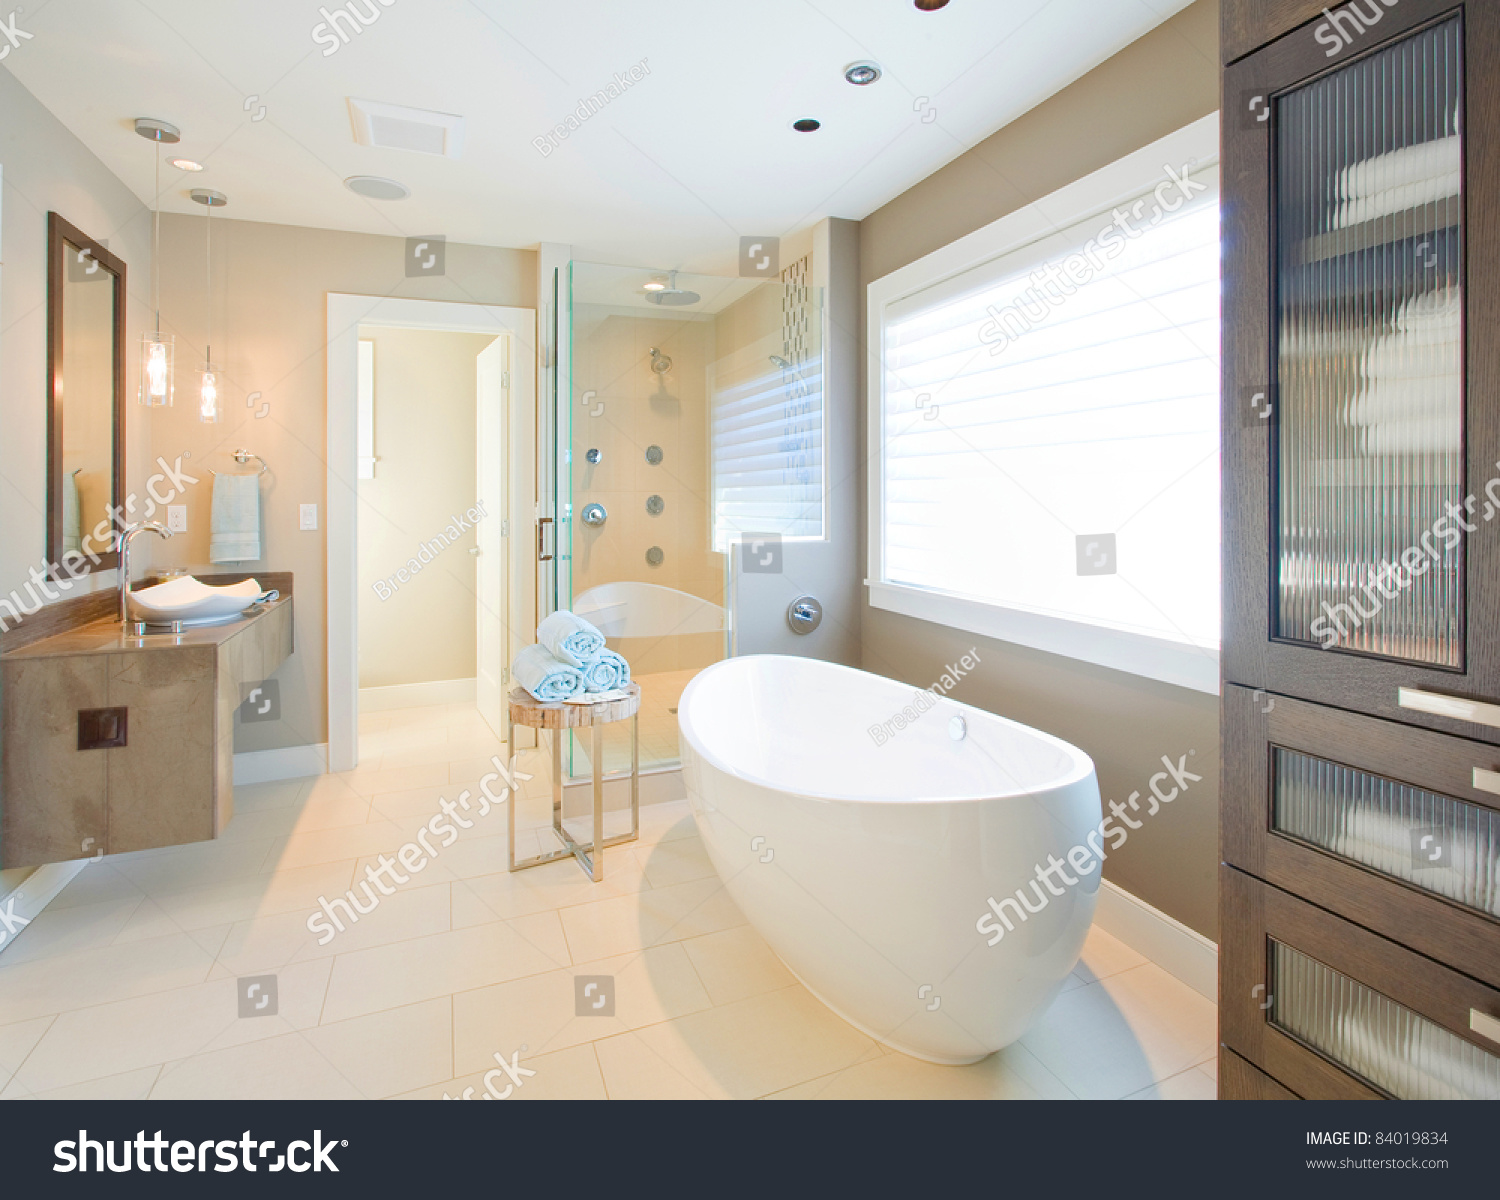 Beautiful bathroom interior new luxury home stock photo for Bathroom interior images